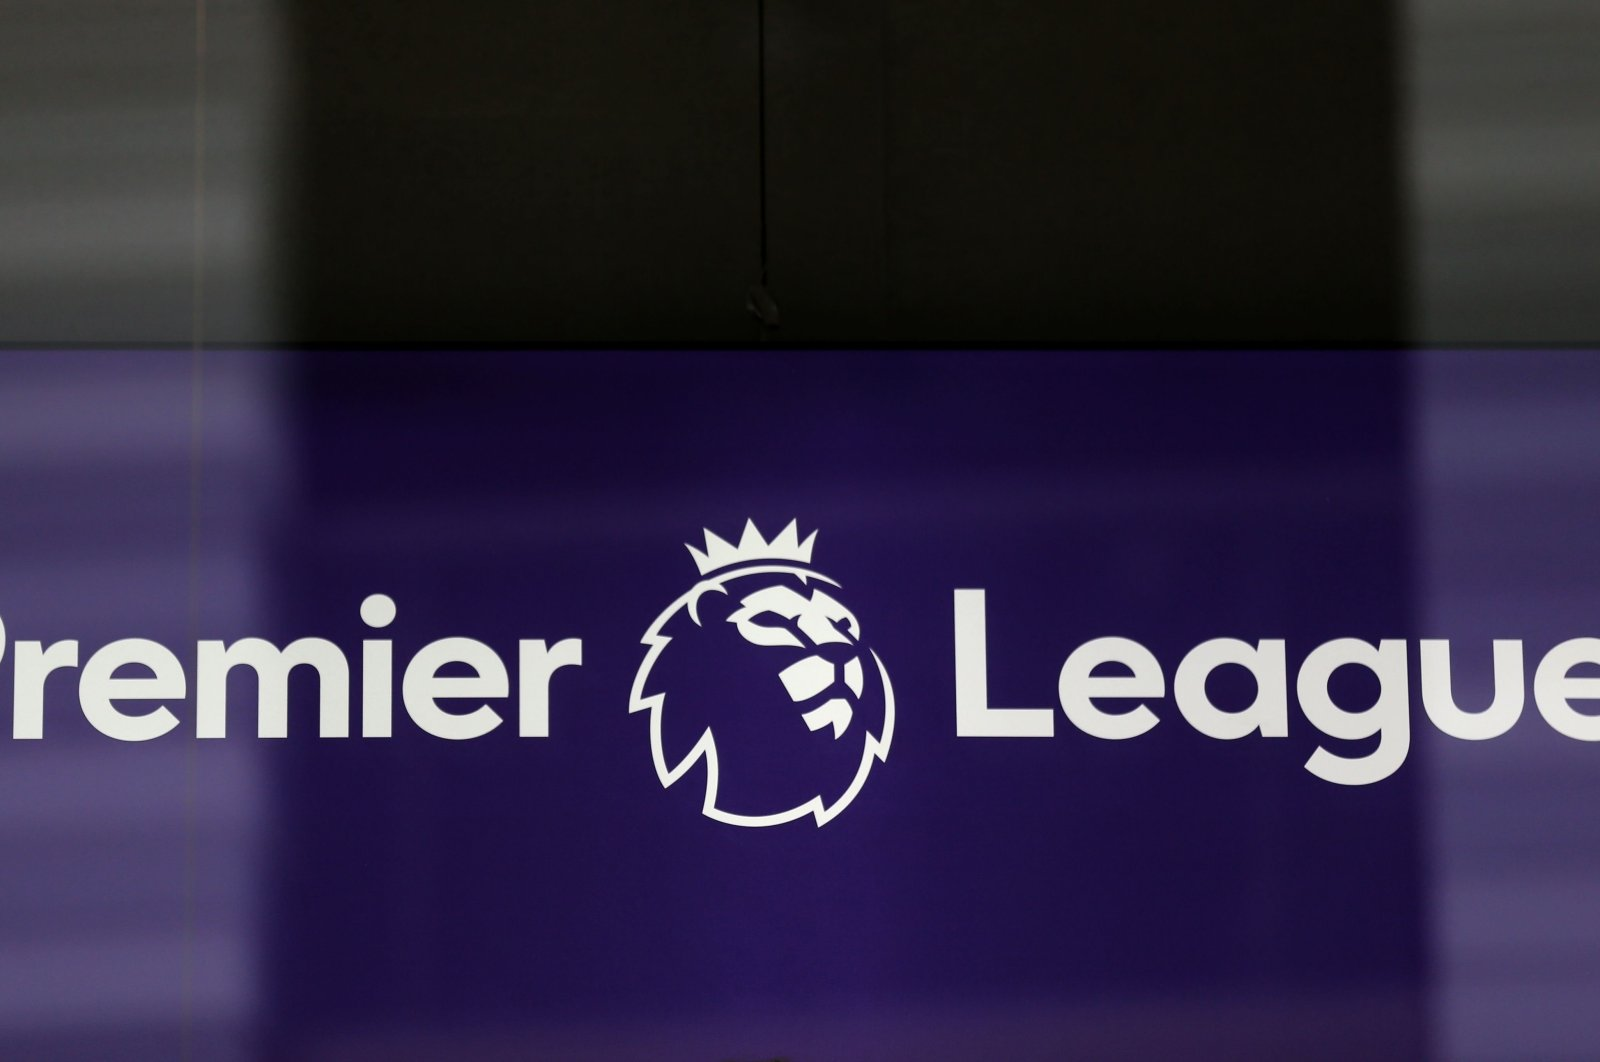 The Premier League logo is pictured through a glass window at the league's headquarters in London, Britain, March 13, 2020. (AFP Photo)